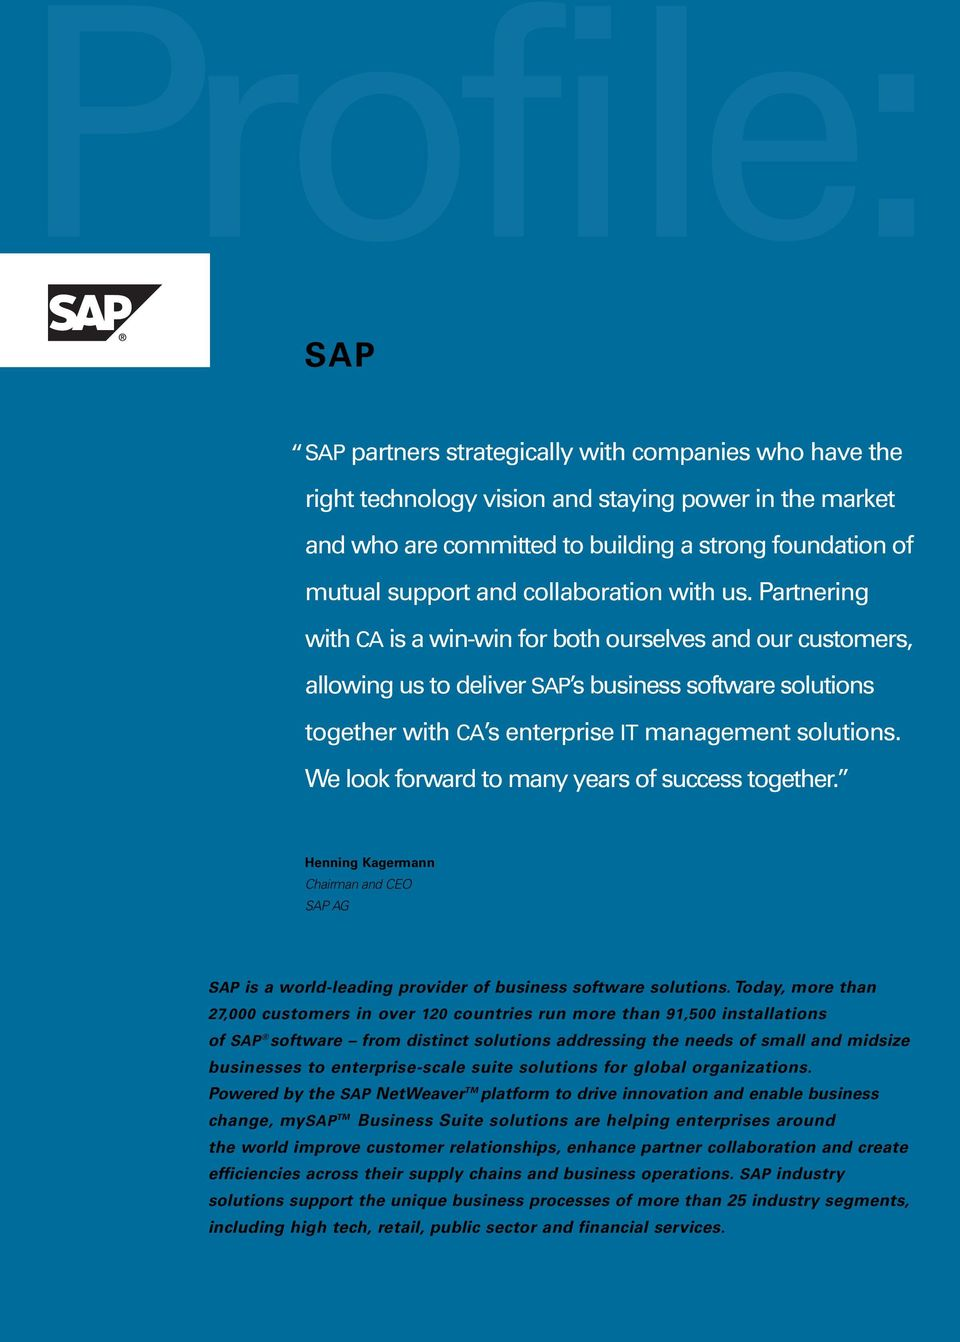 Partnering with CA is a win-win for both ourselves and our customers, allowing us to deliver SAP s business software solutions together with CA s enterprise IT management solutions.